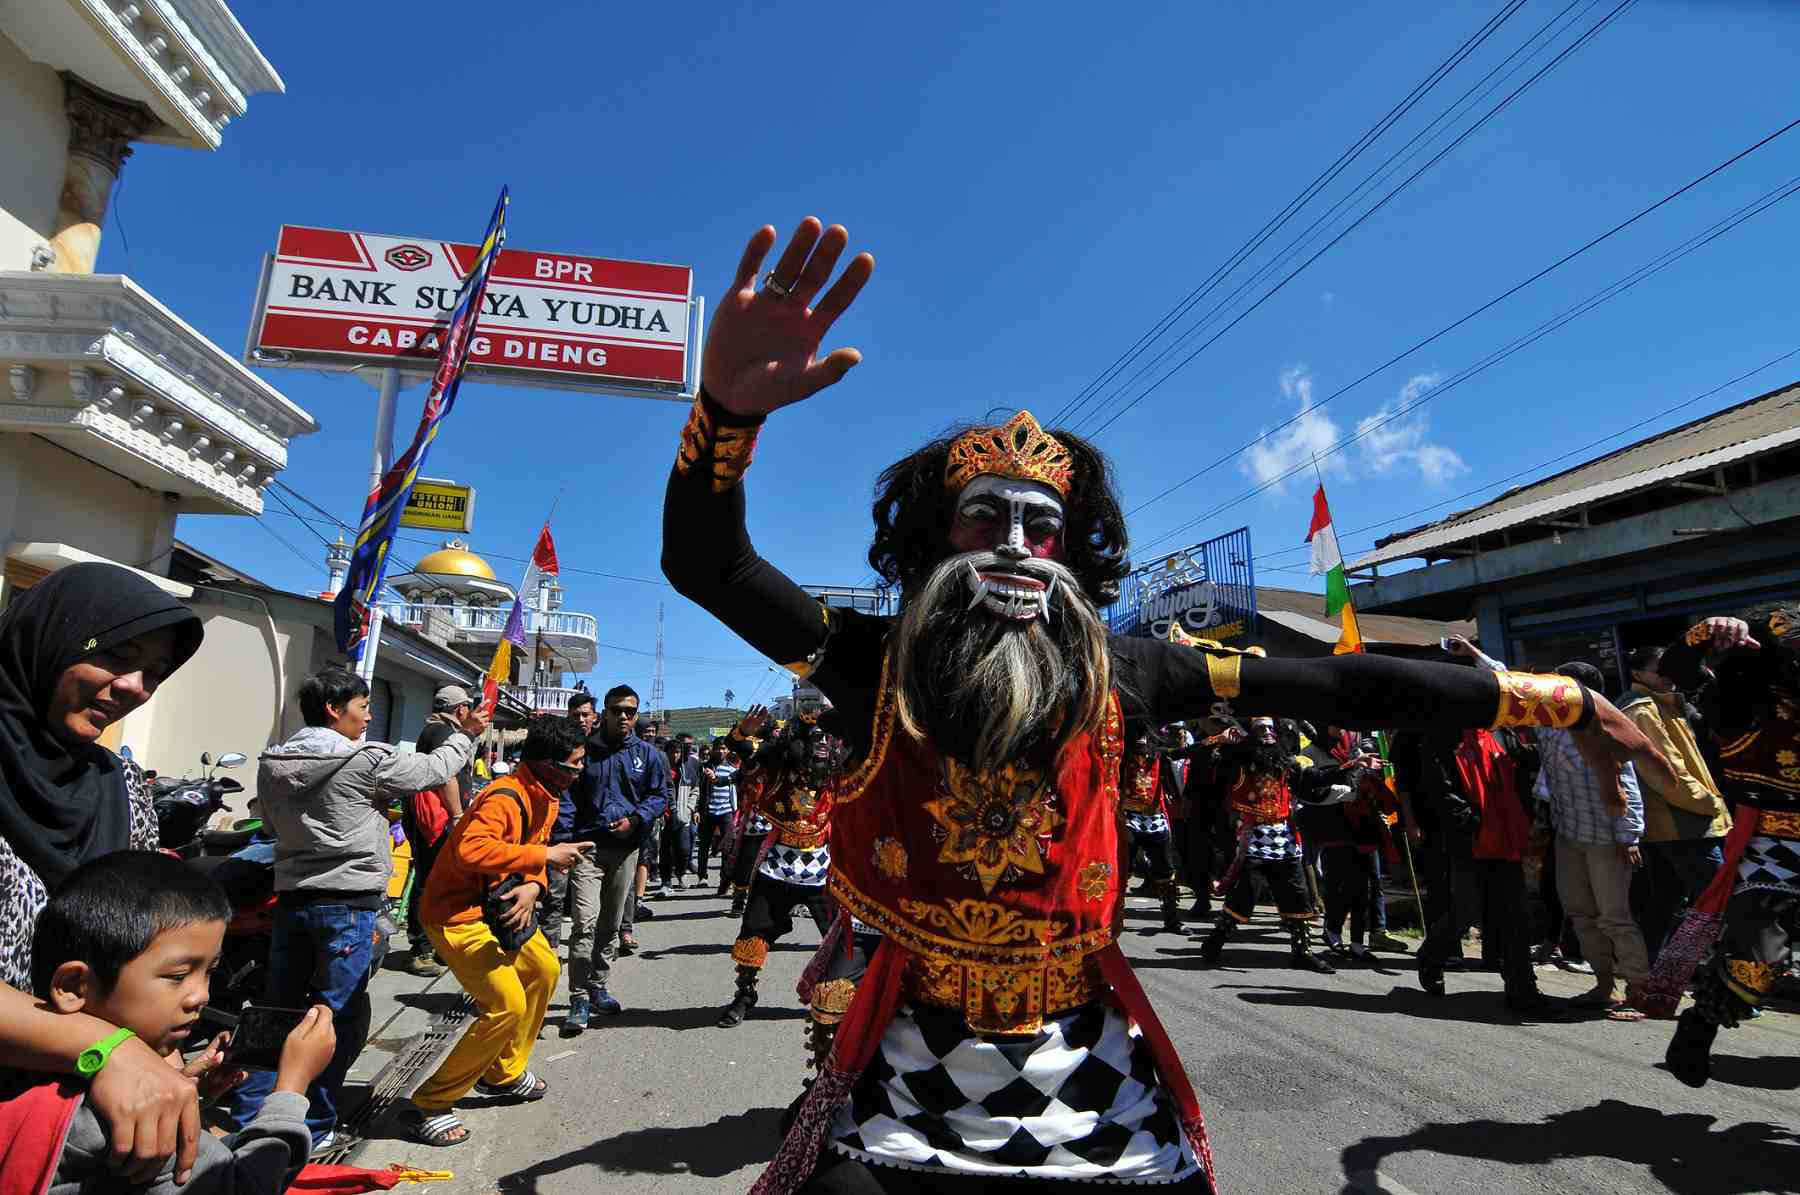 Dieng Culture Festival procession, Indonesia